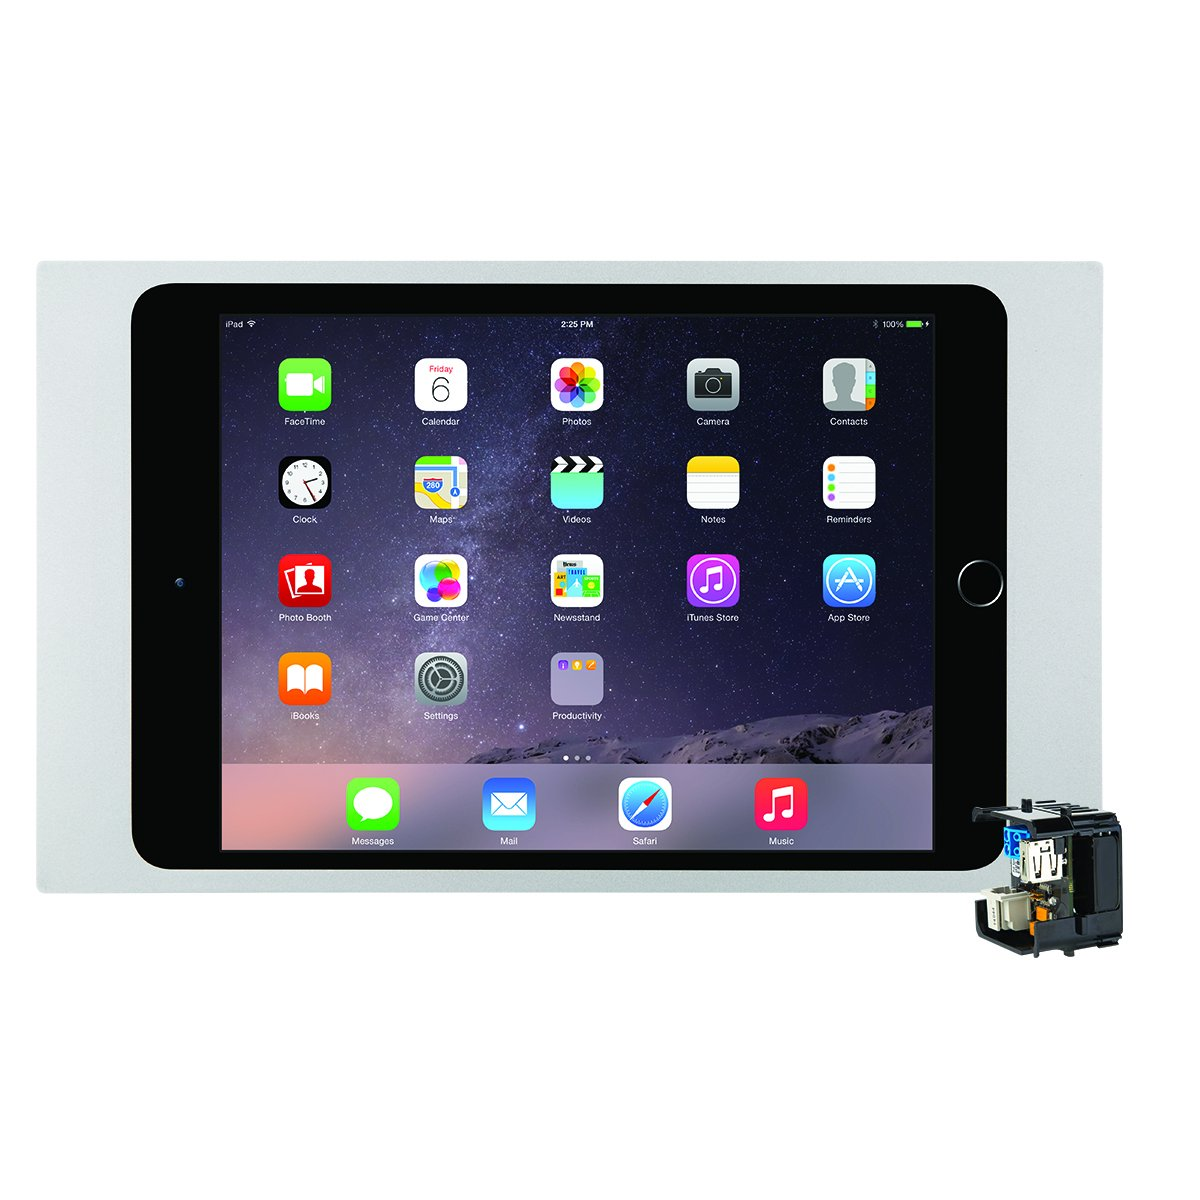 iPort 70735 Surface Mount System (Bezel for iPad Mini, 2 and Mini 3- Silver and PoE Splitter) by iPort (Image #1)